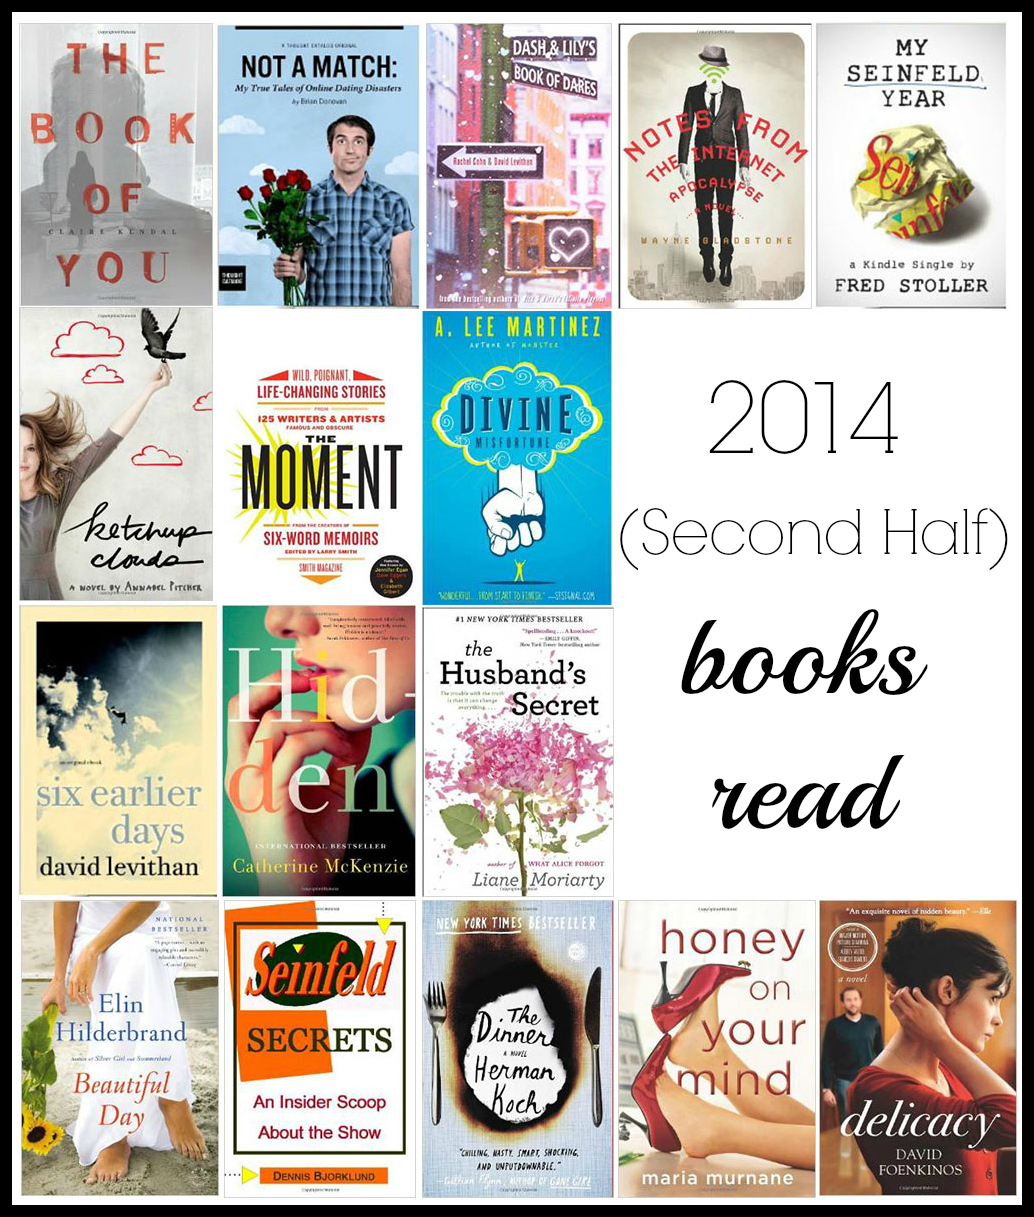 2014-Second-Half-Books-Read